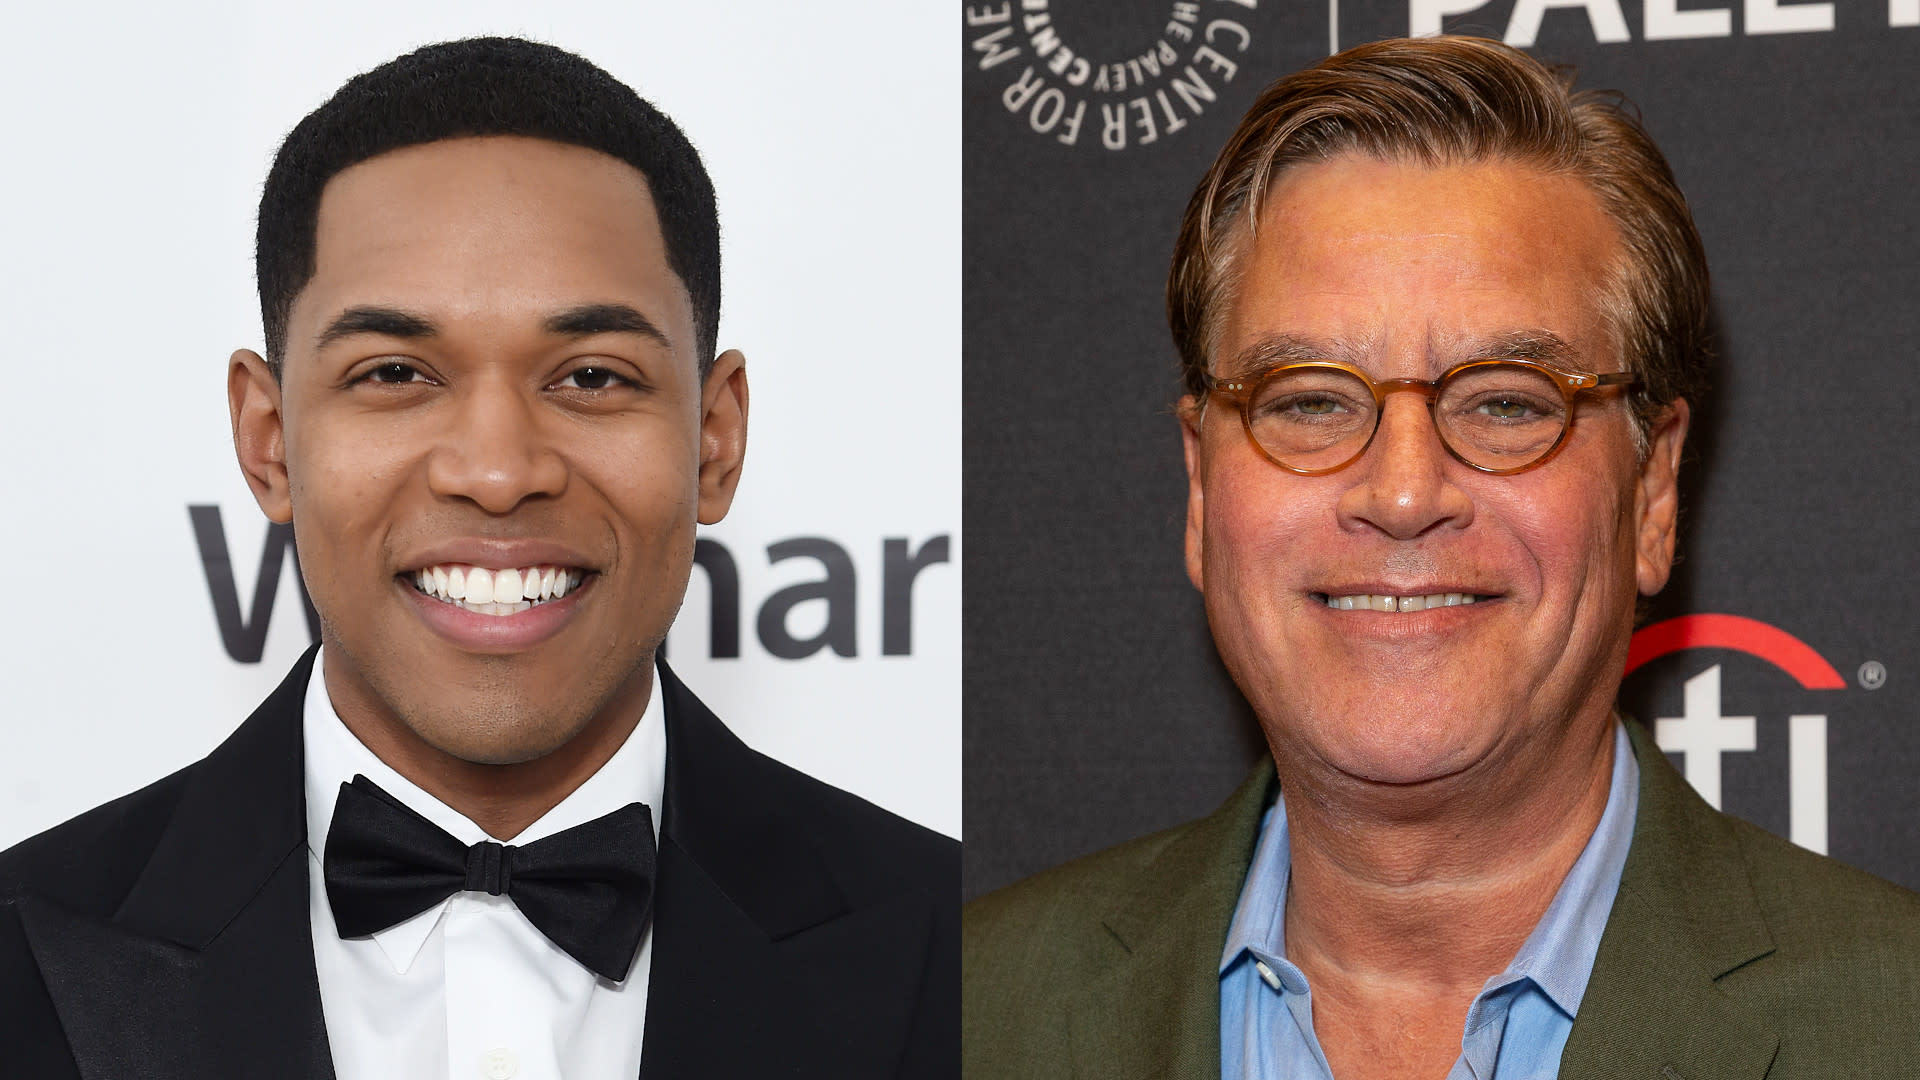 Kelvin Harrison Jr. and Aaron Sorkin. (Credit: Jamie McCarthy/Getty Images for EJAF/Lev Radin/Pacific Press/LightRocket via Getty Images)